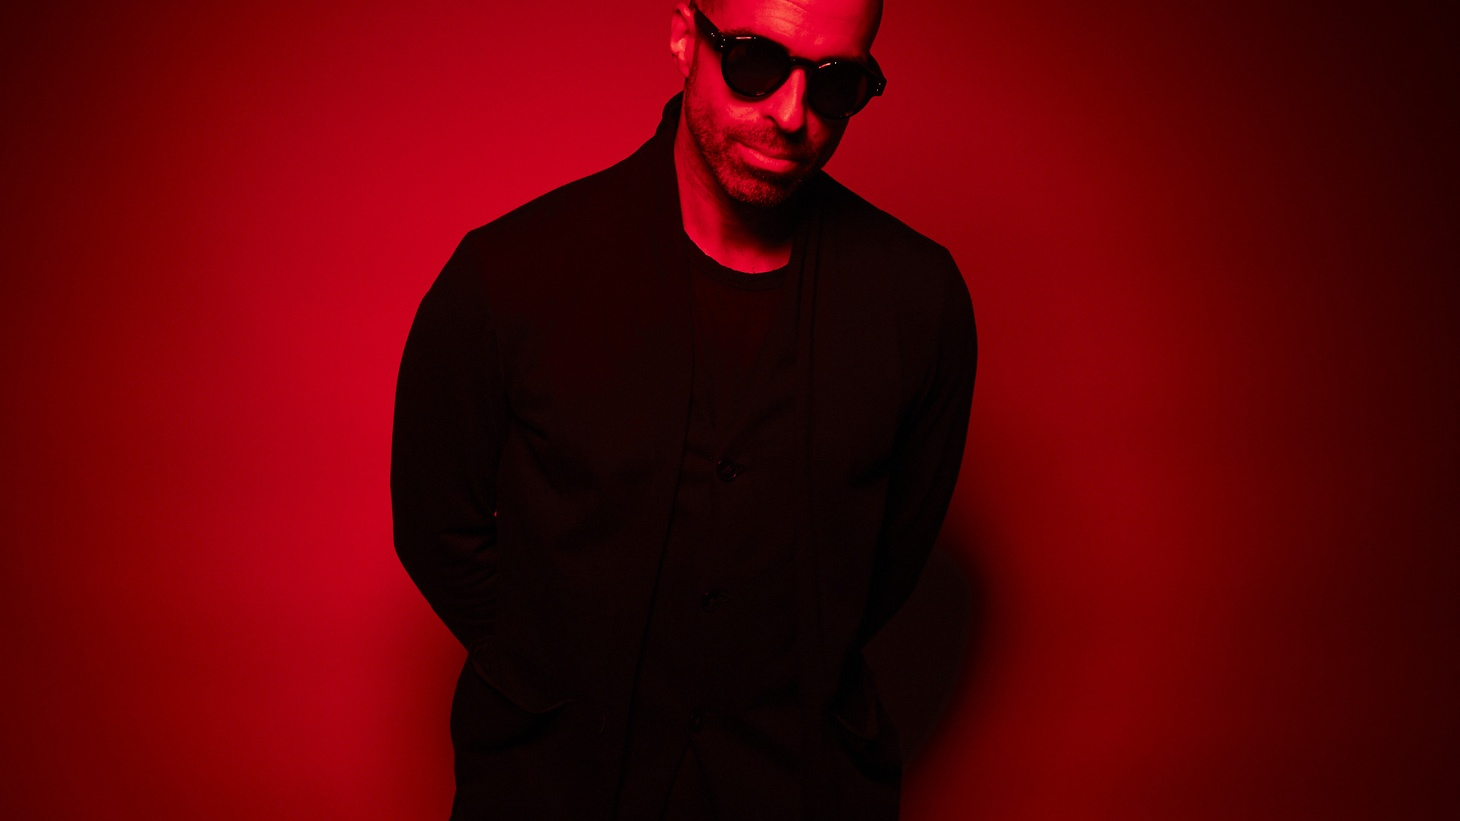 For the past 25 years, Techno veteran Chris Liebing has channeled his passions of music production, performance and broadcasting on a global level.